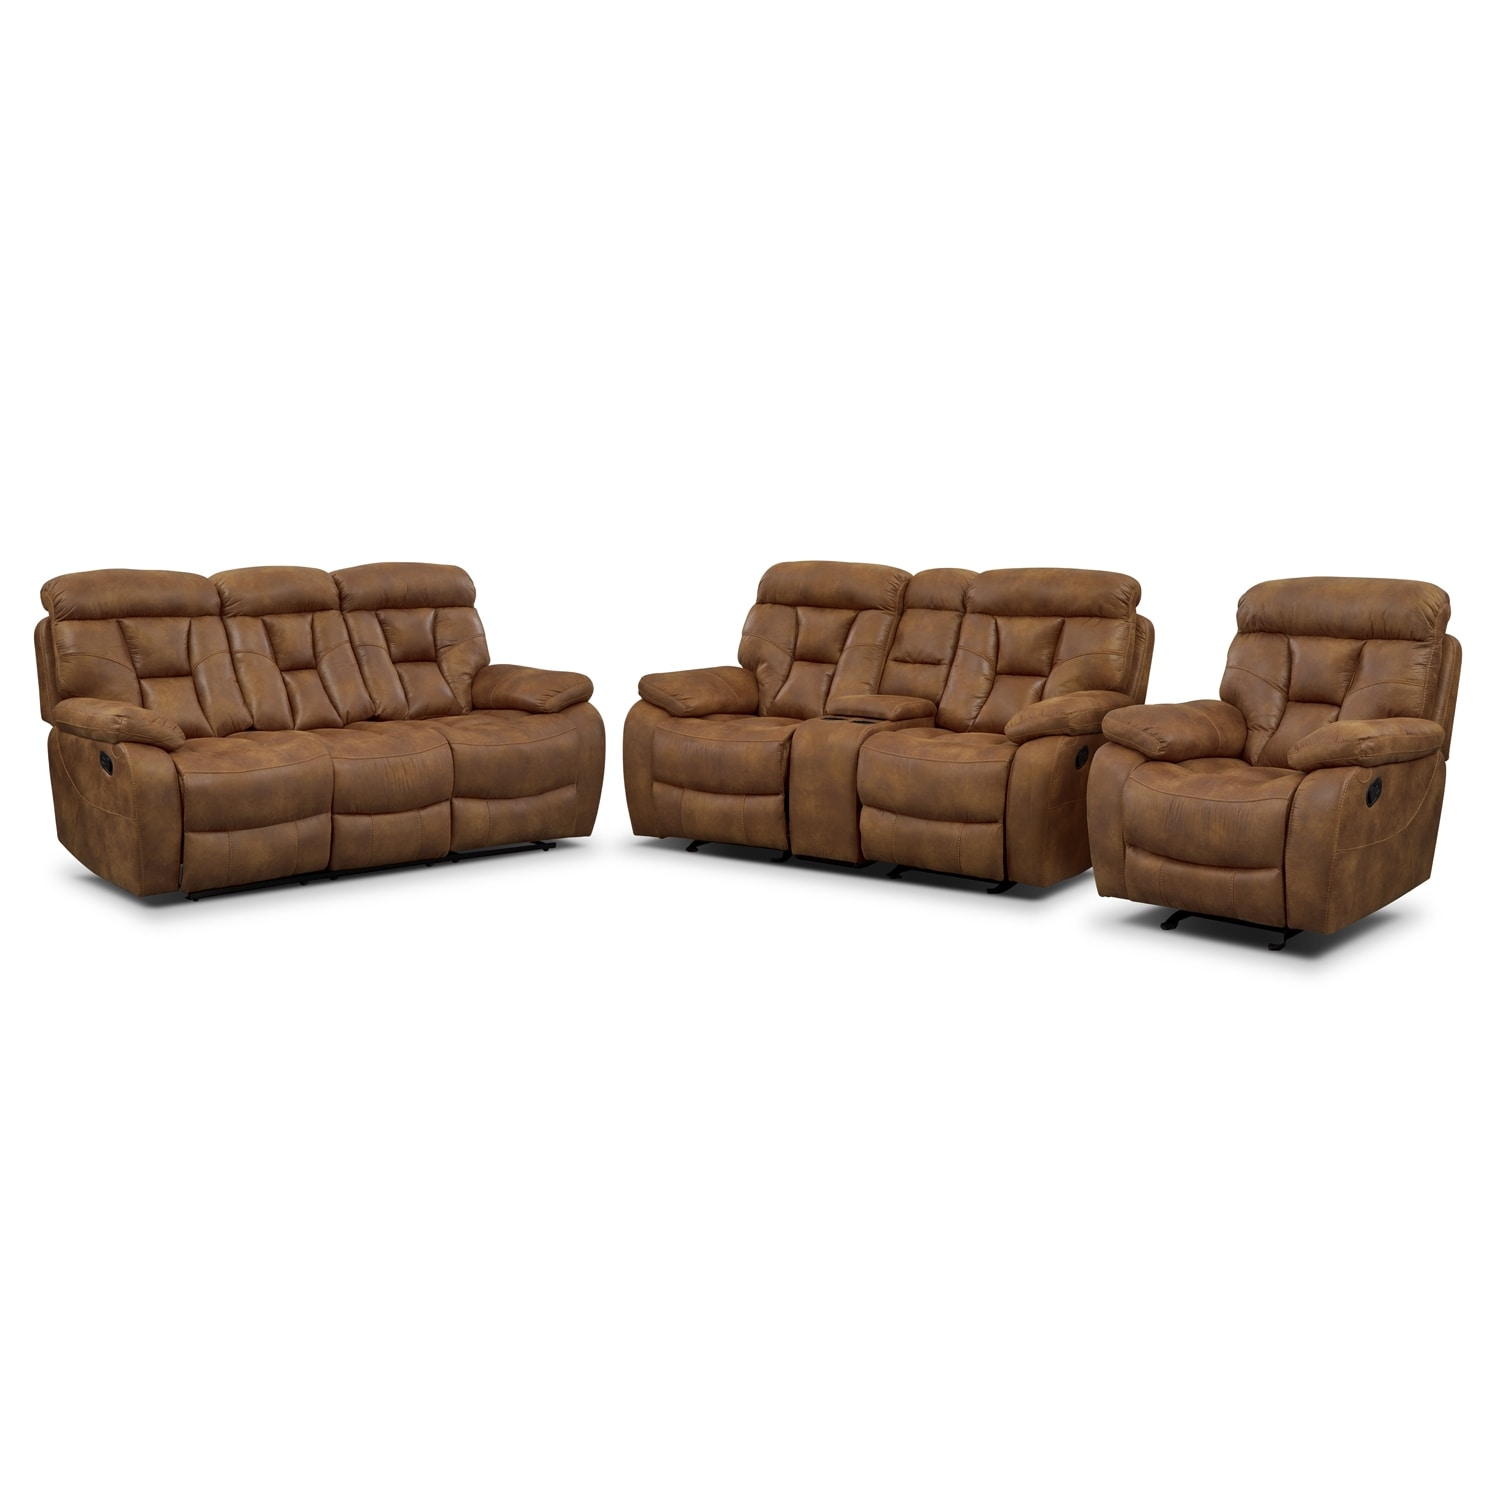 Dakota Reclining Sofa Gliding Loveseat And Glider Recliner Set Almond Value City Furniture